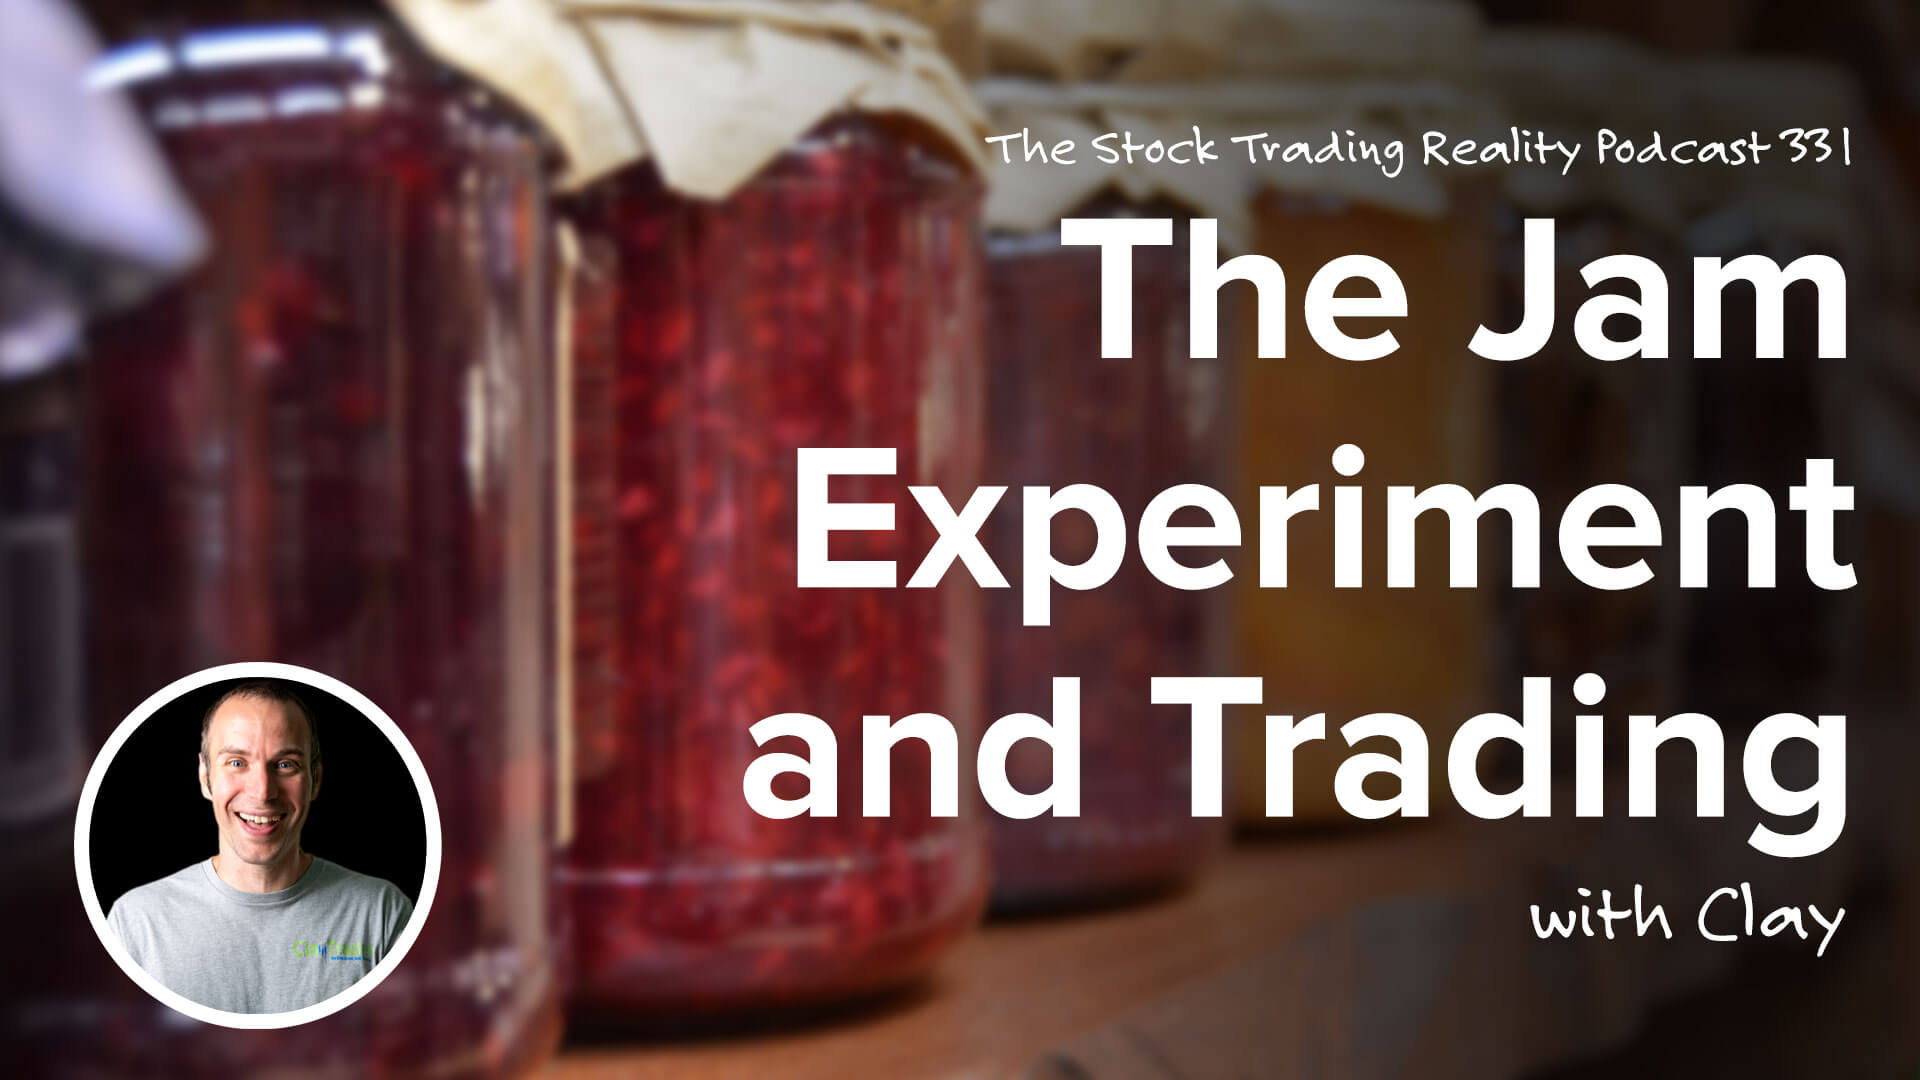 The Jam Experiment and Trading   STR 331